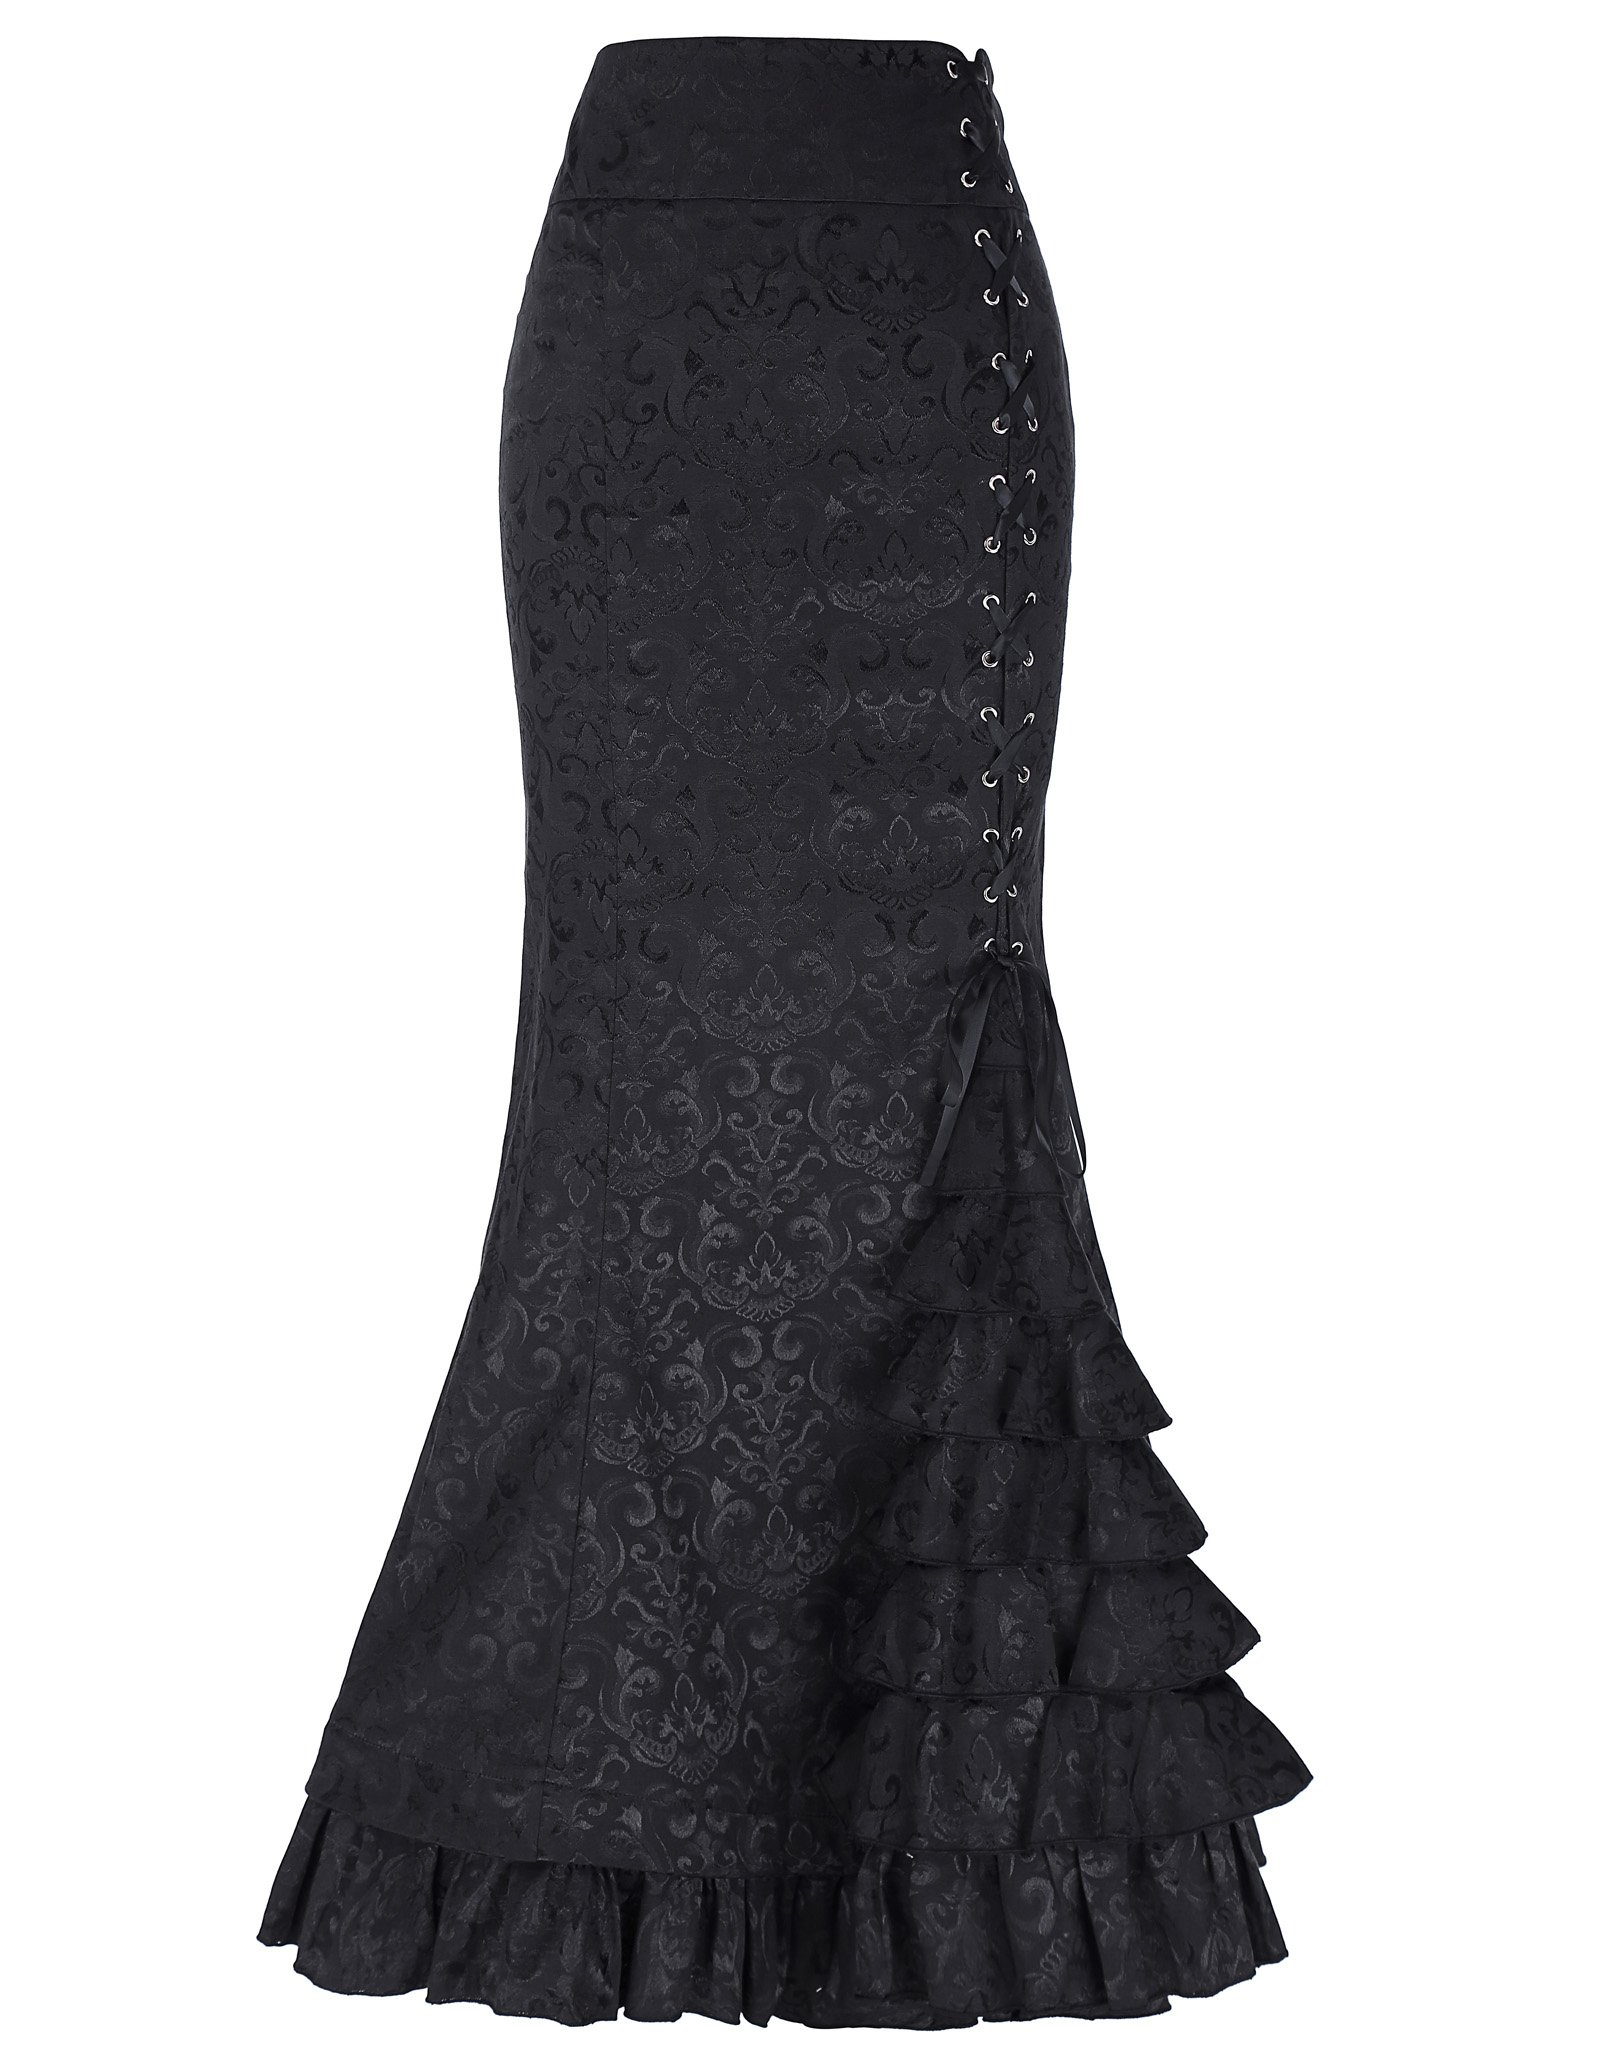 Belle Poque Black Victorian Steampunk Mermaid Skirt for Women Corset Style Size 8 Black BP204-1